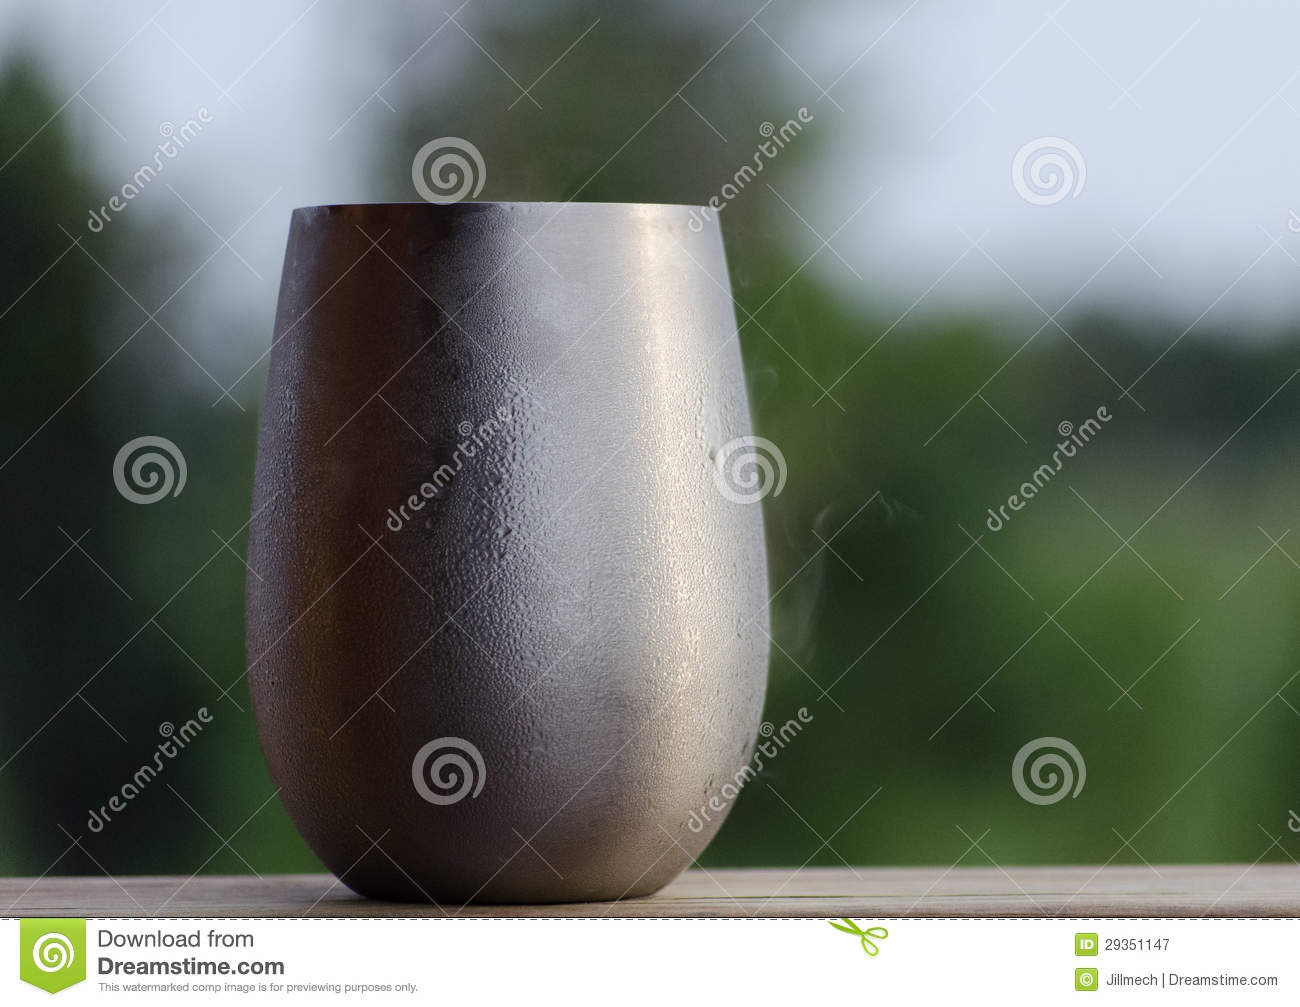 frosty beverage in silver stainless steel stemless